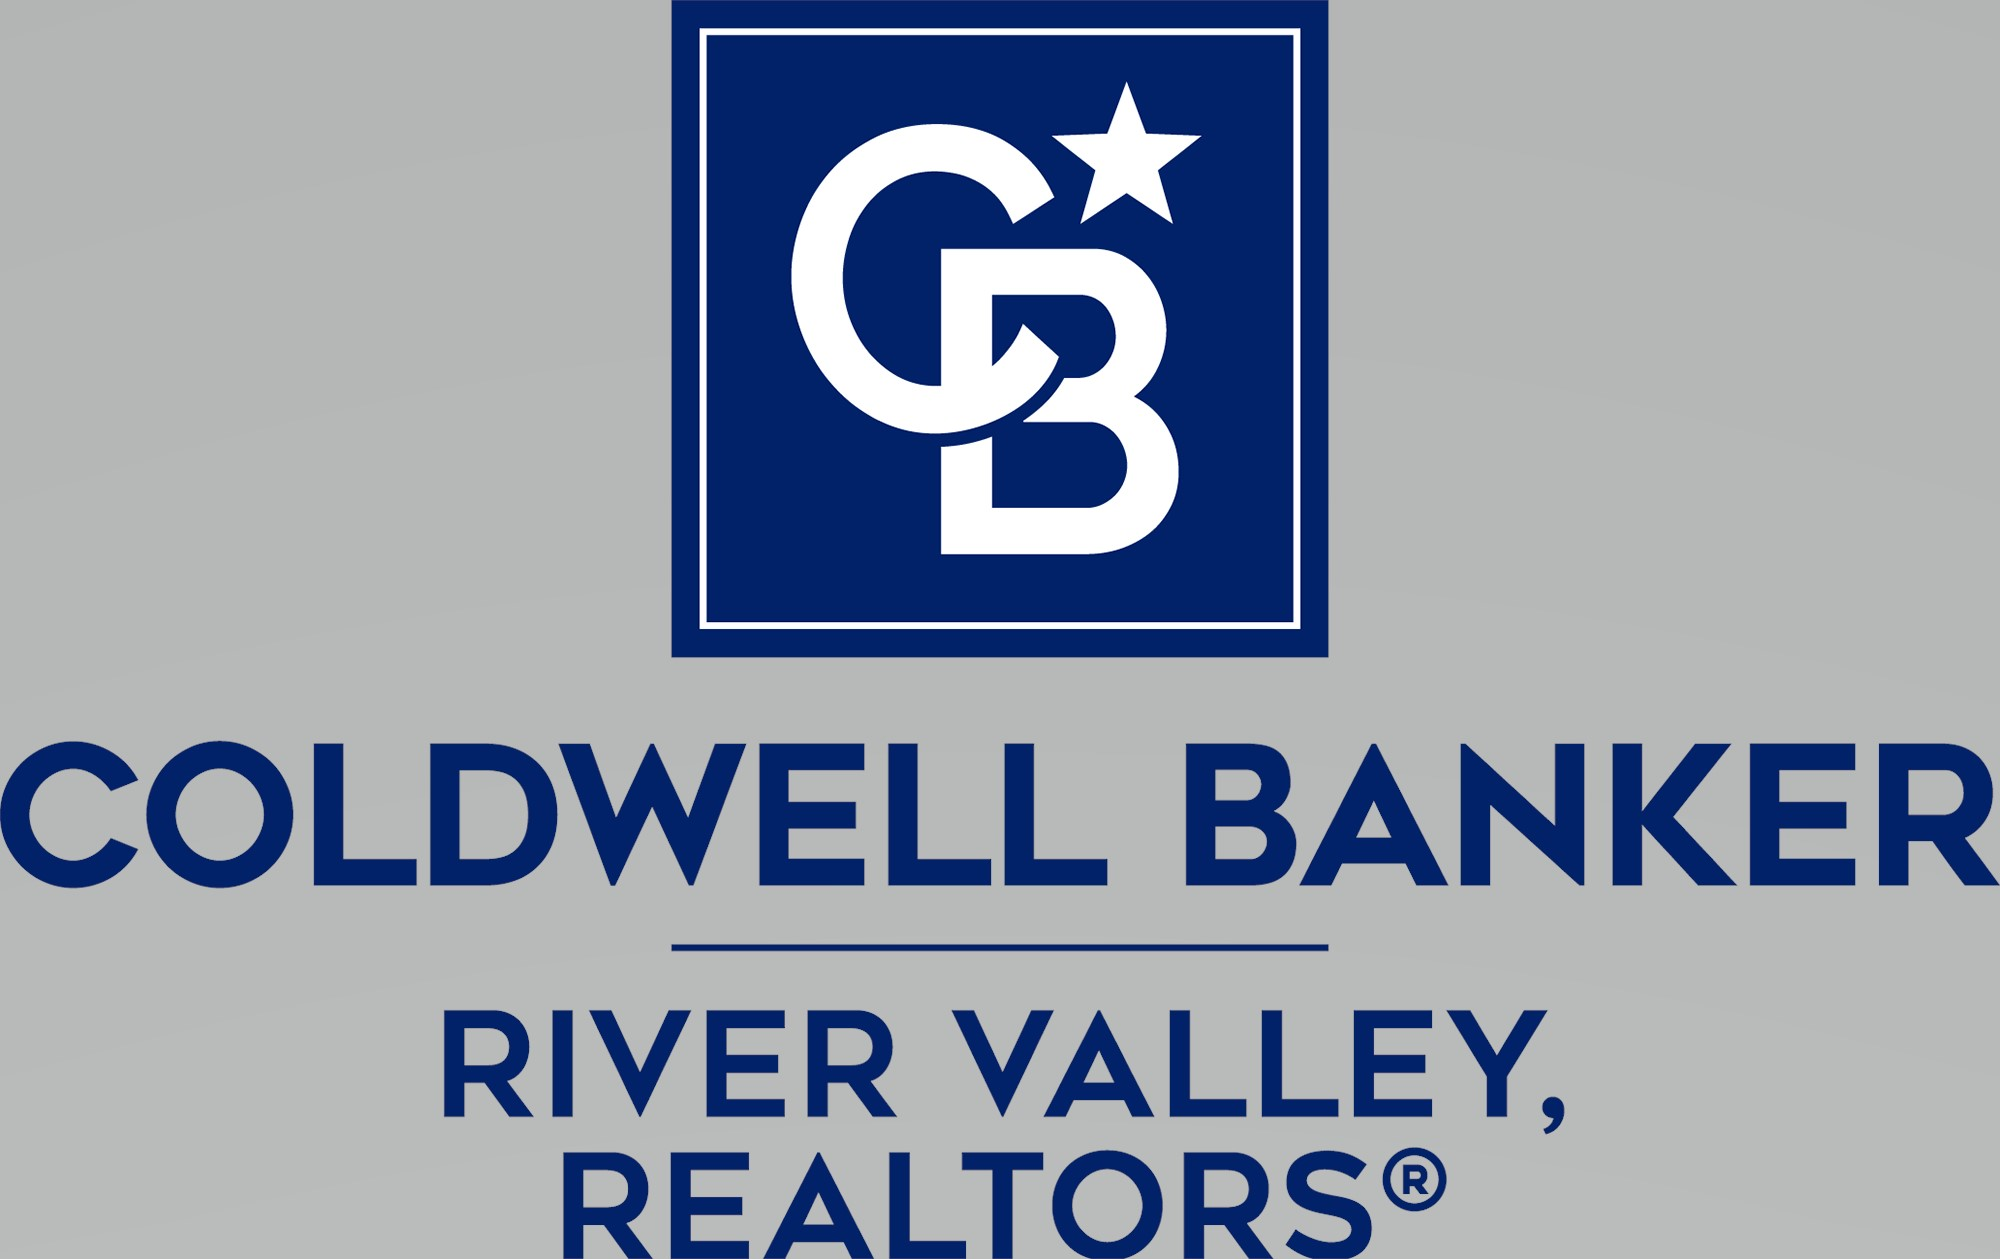 Betty Thilmany - Coldwell Banker River Valley Realtors